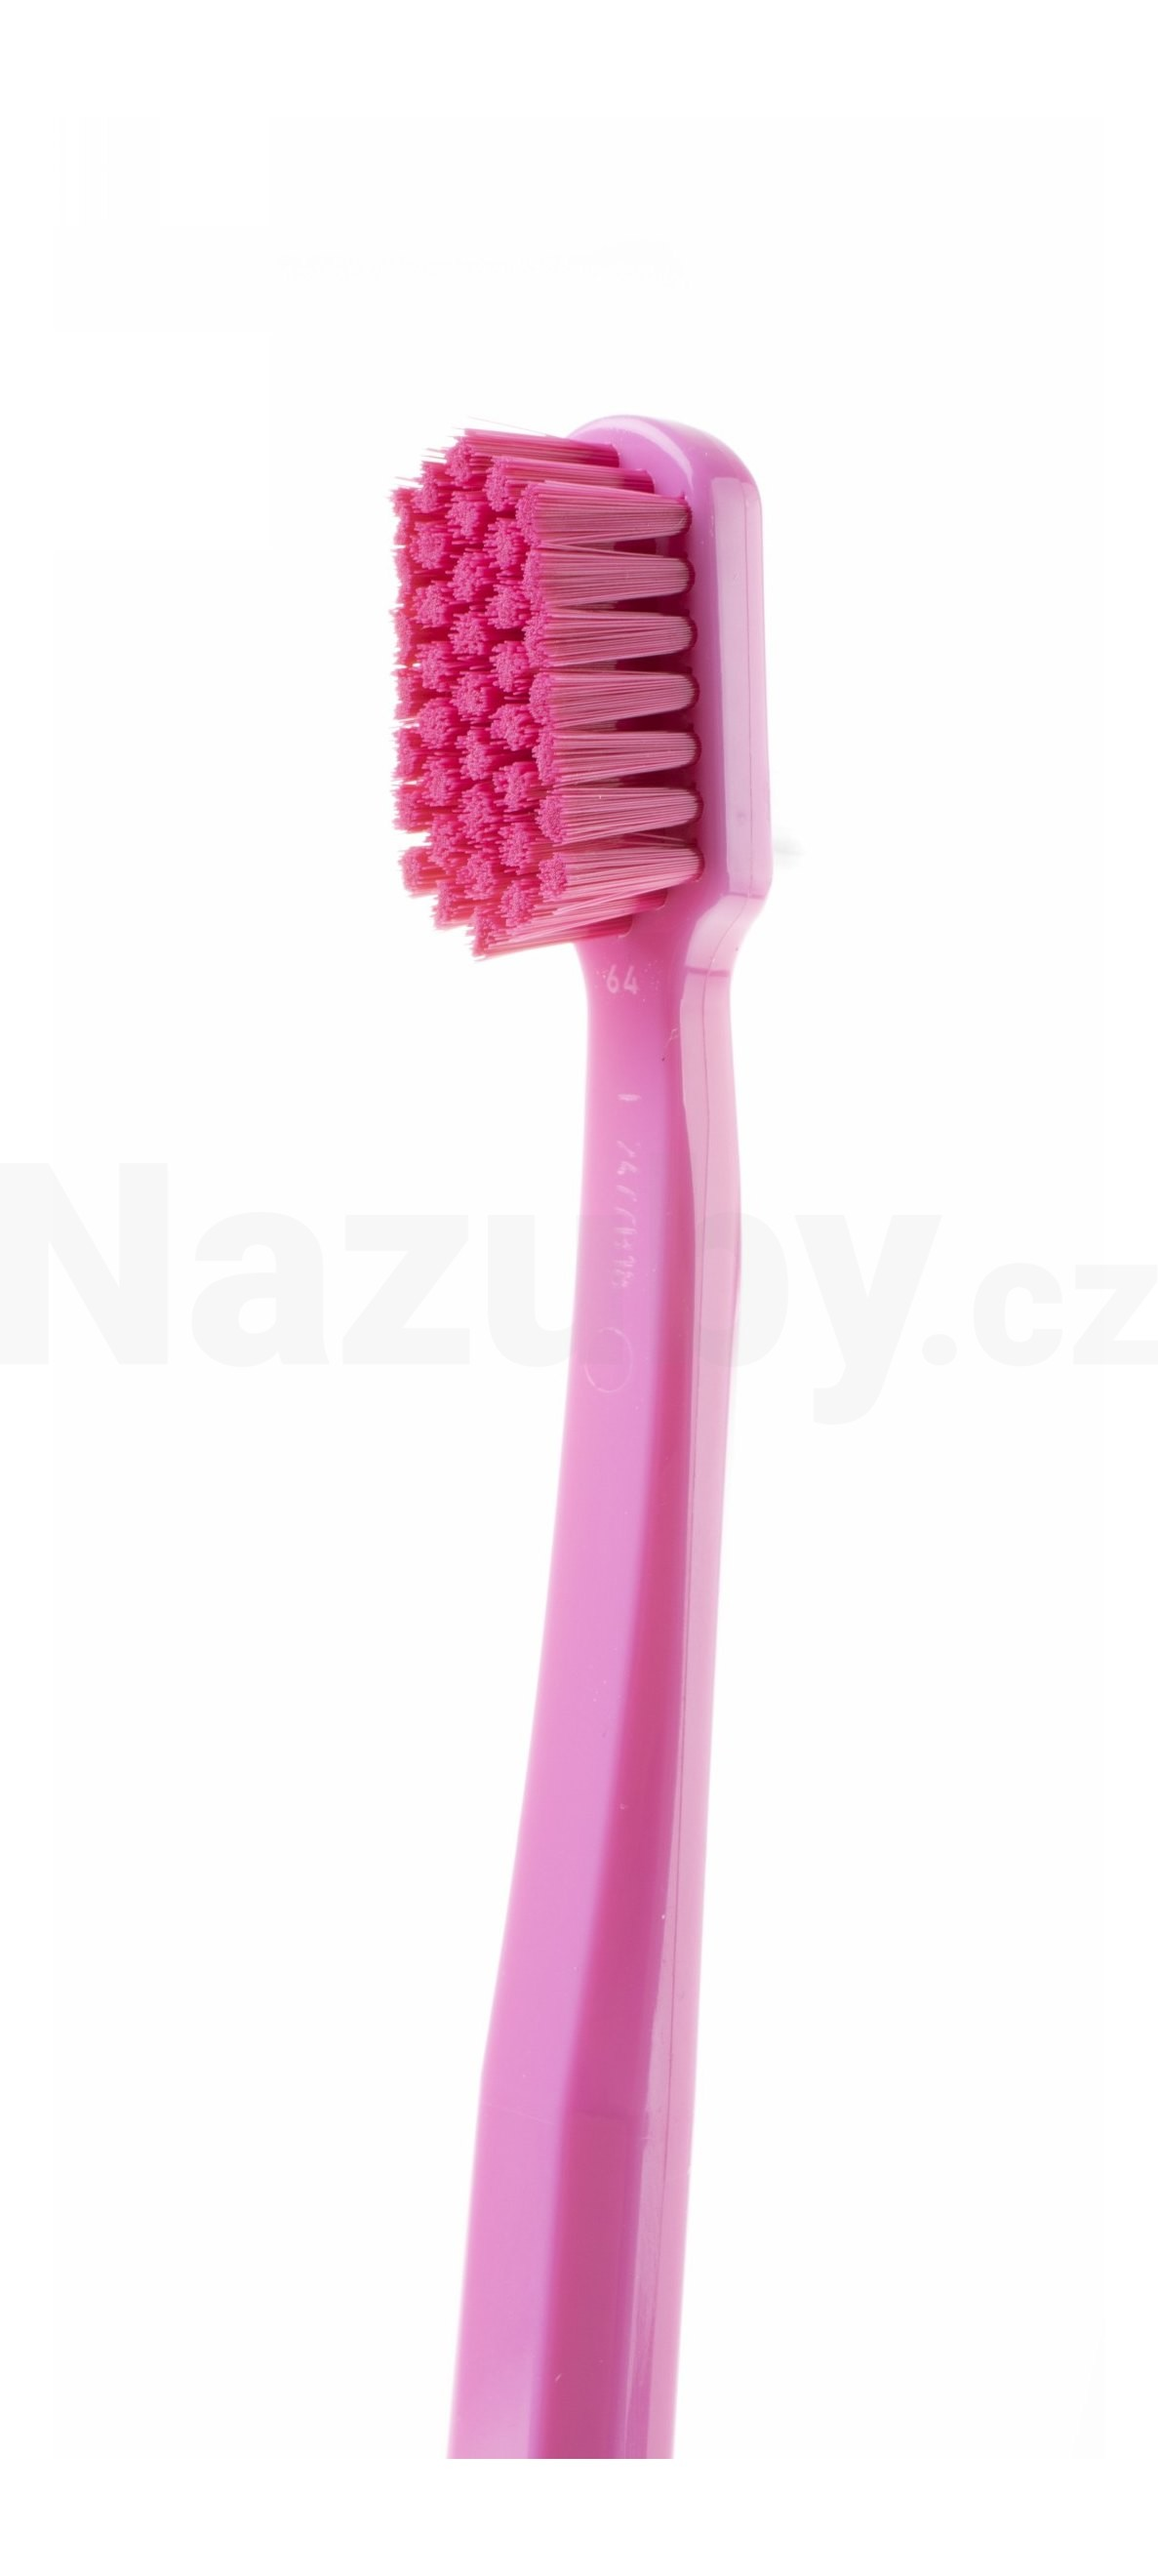 Curaprox CS 5460 Ultra Soft 1 ks - PINK EDICE